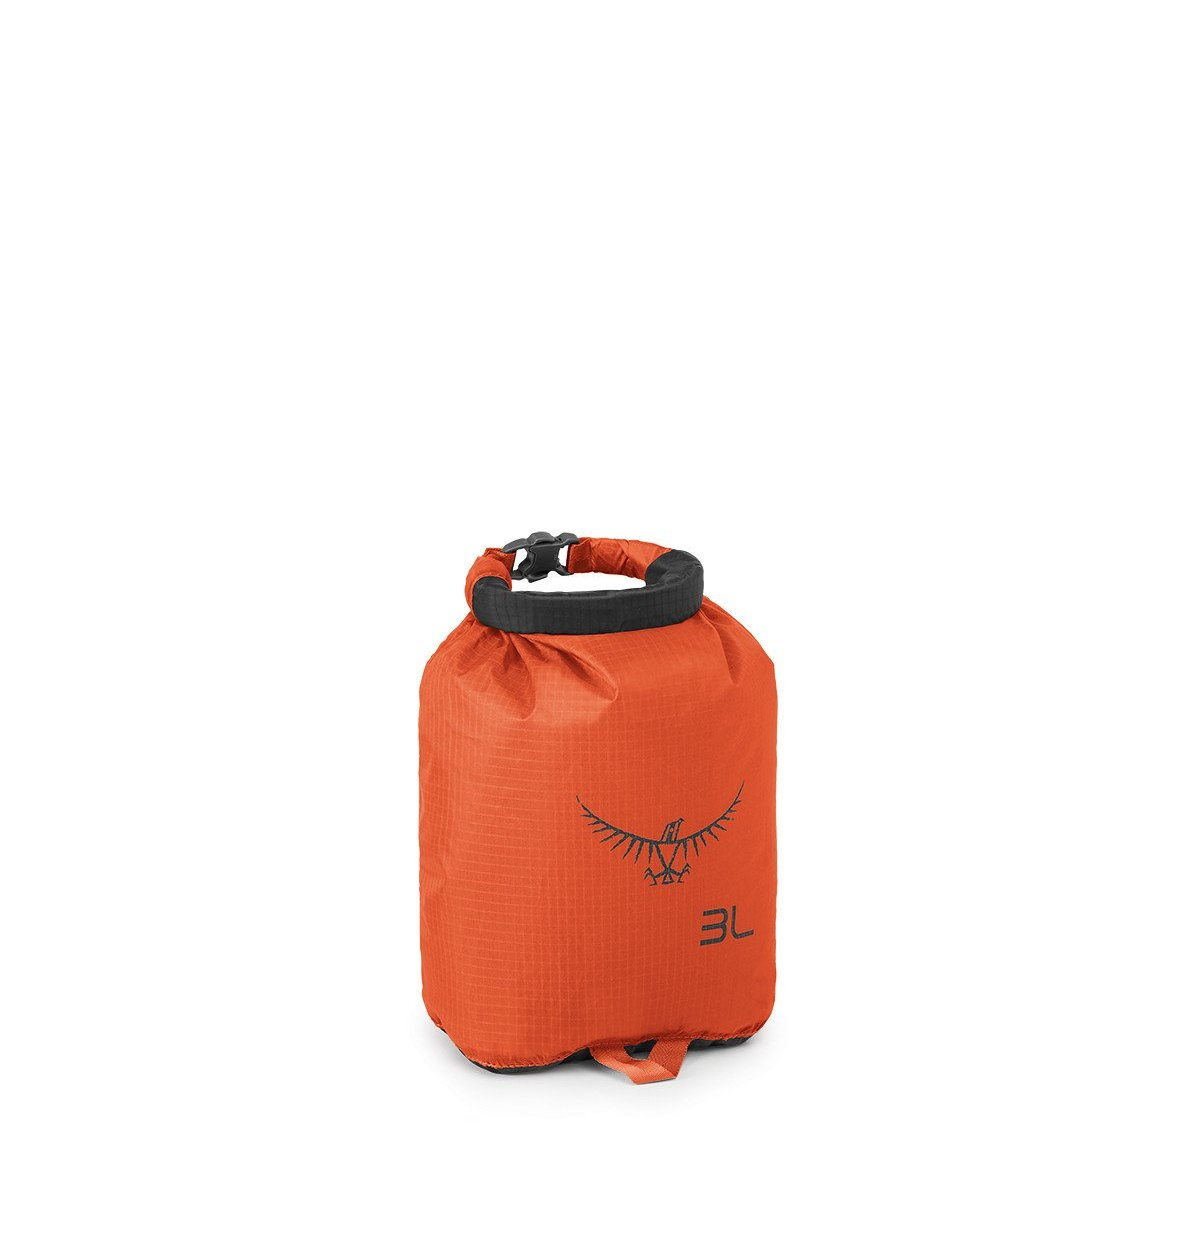 ULTRALIGHT DRY SACK 3 LITER